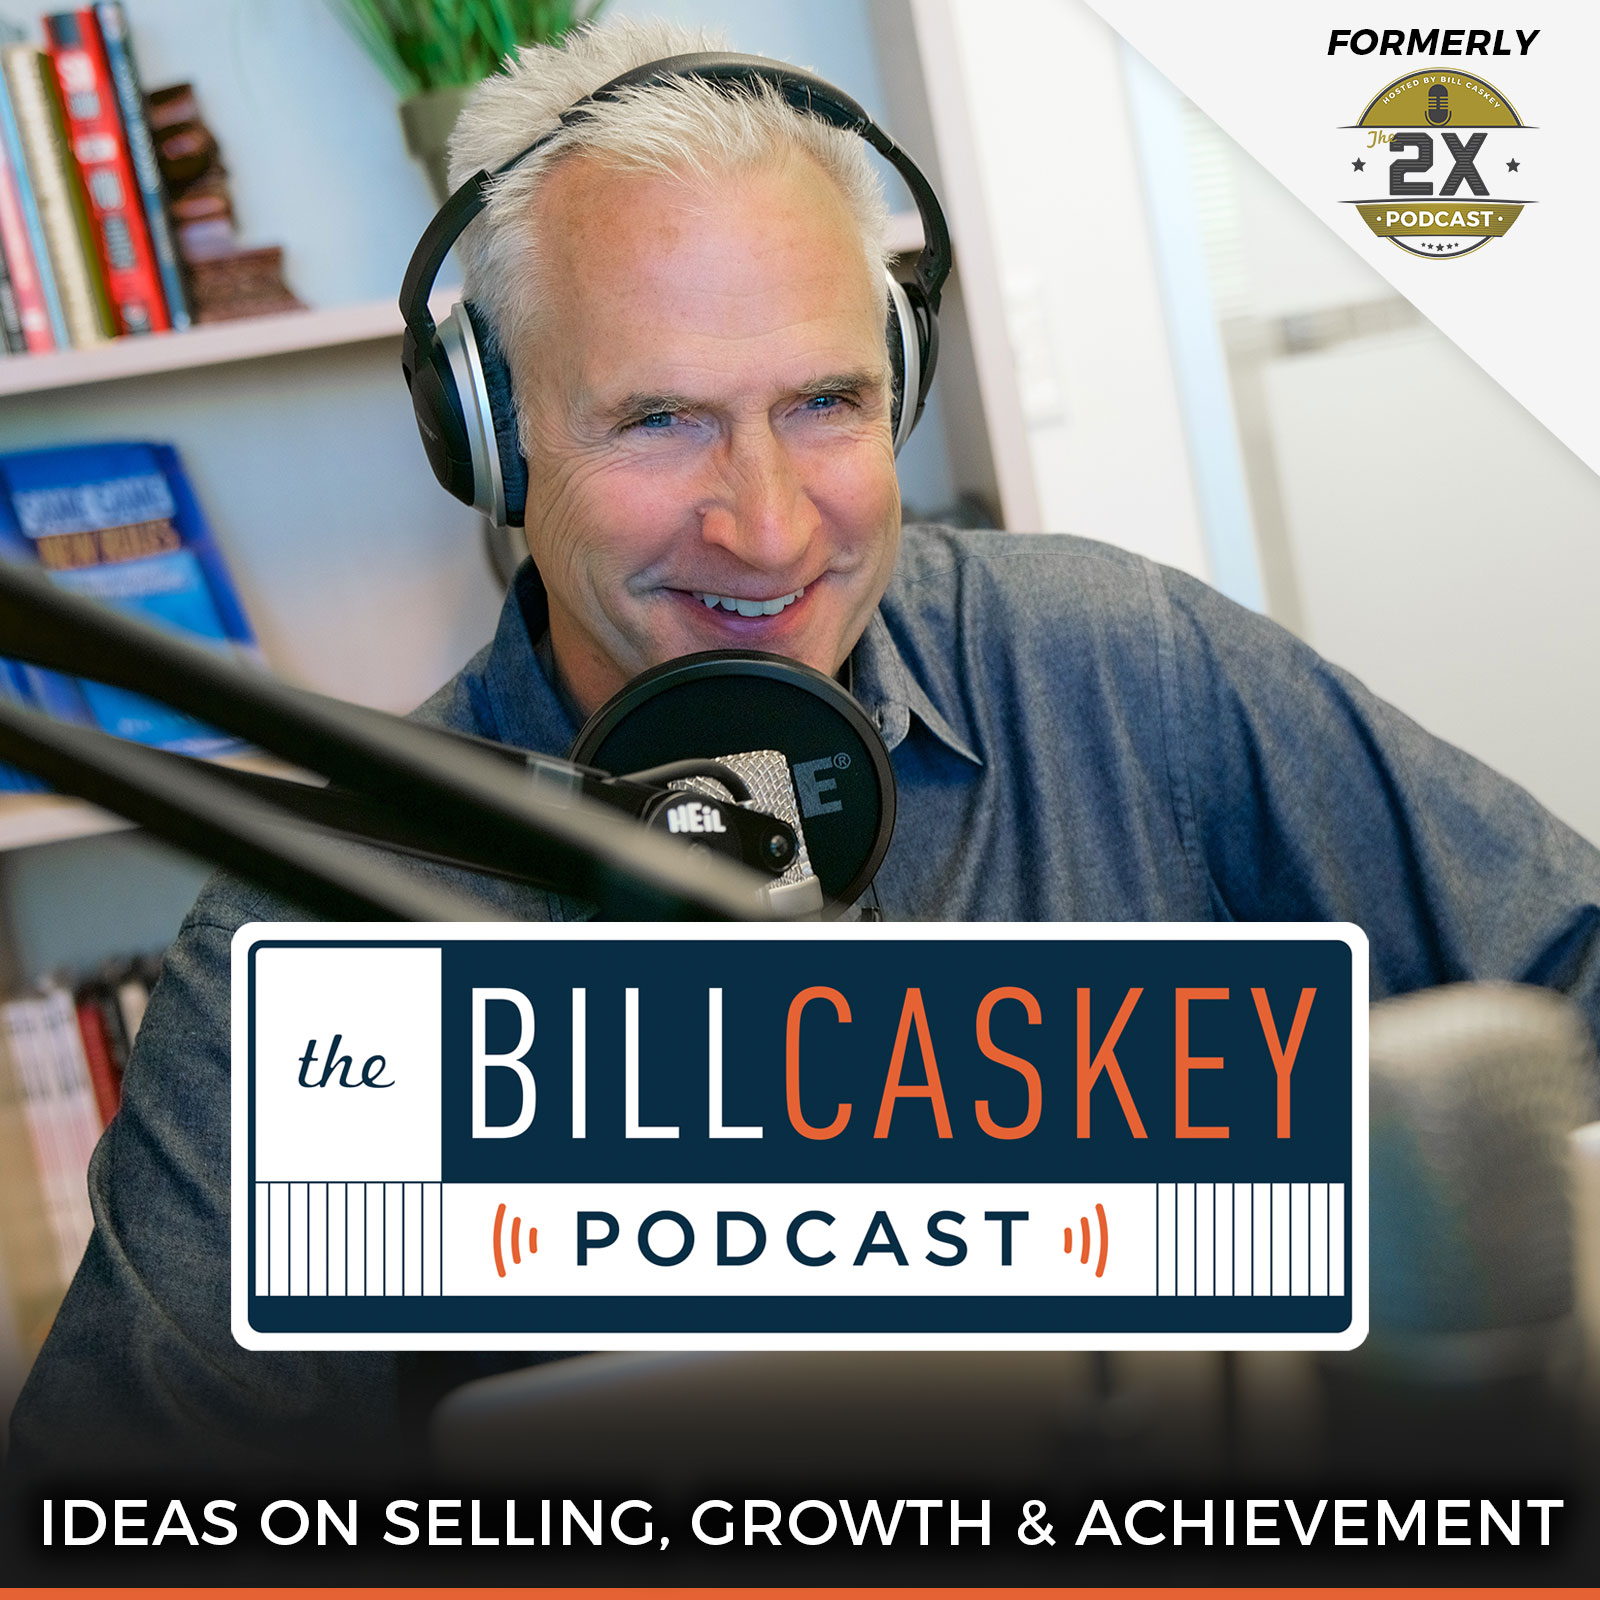 The Bill Caskey Podcast: High Impact Sales Training for Sellers and Leaders show art